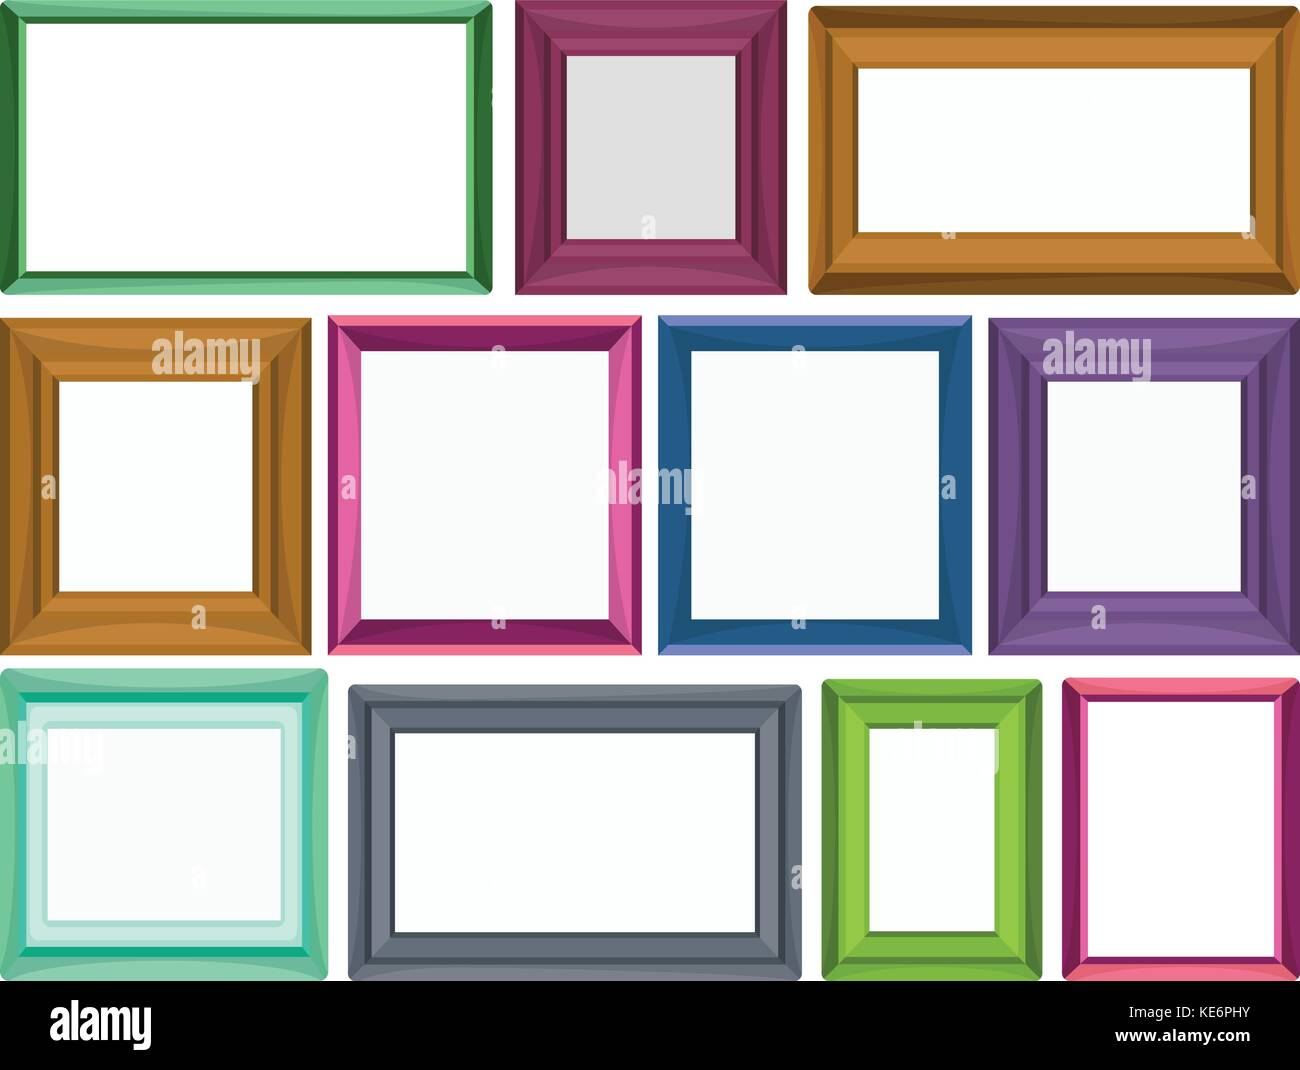 Different sizes for photo frames stock vector art illustration different sizes for photo frames jeuxipadfo Choice Image